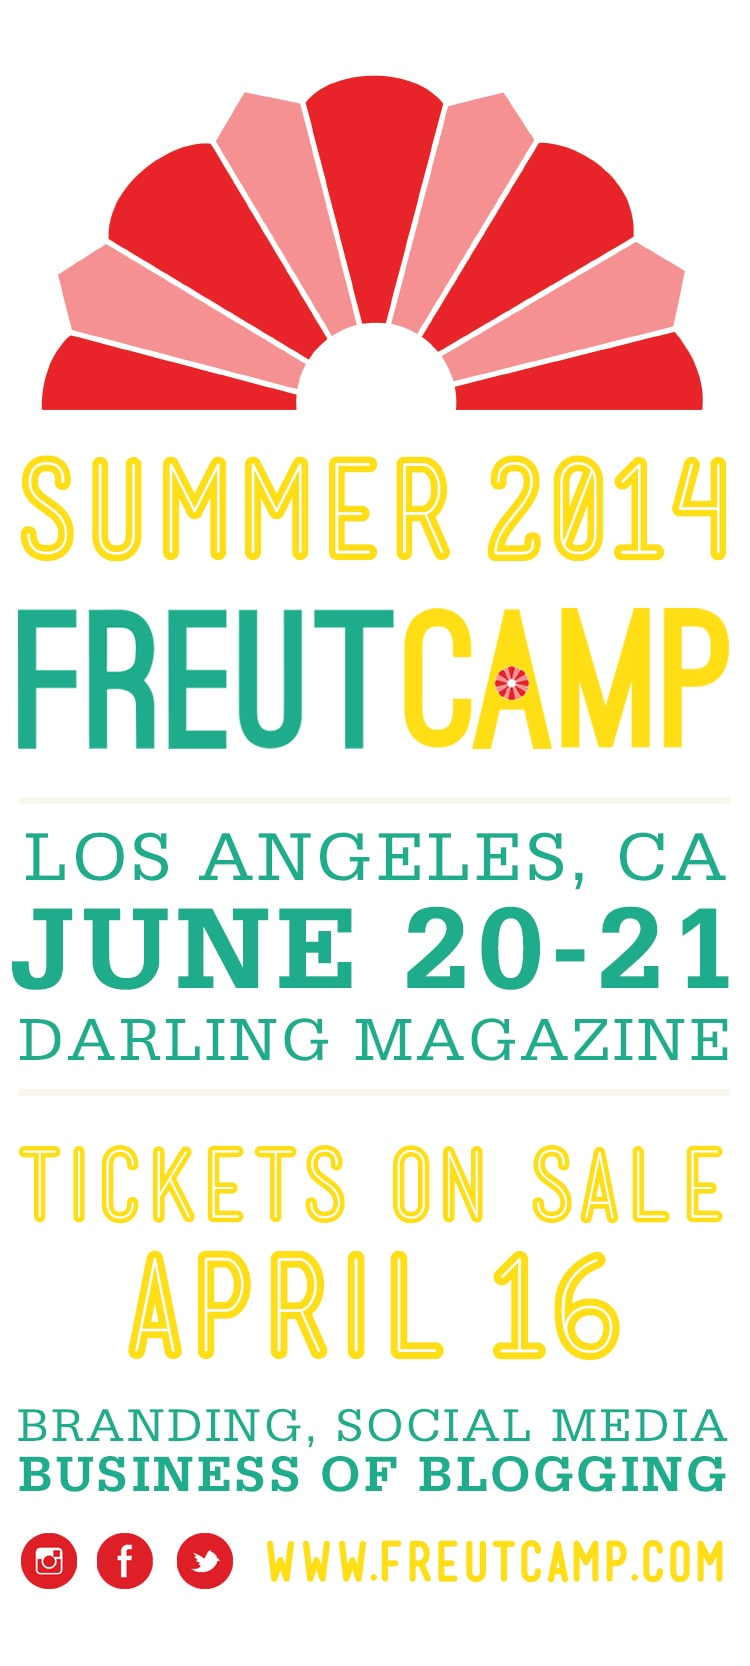 FREUTCAMP 2014 ANNOUNCEMENT Freutcamp Summer 2014